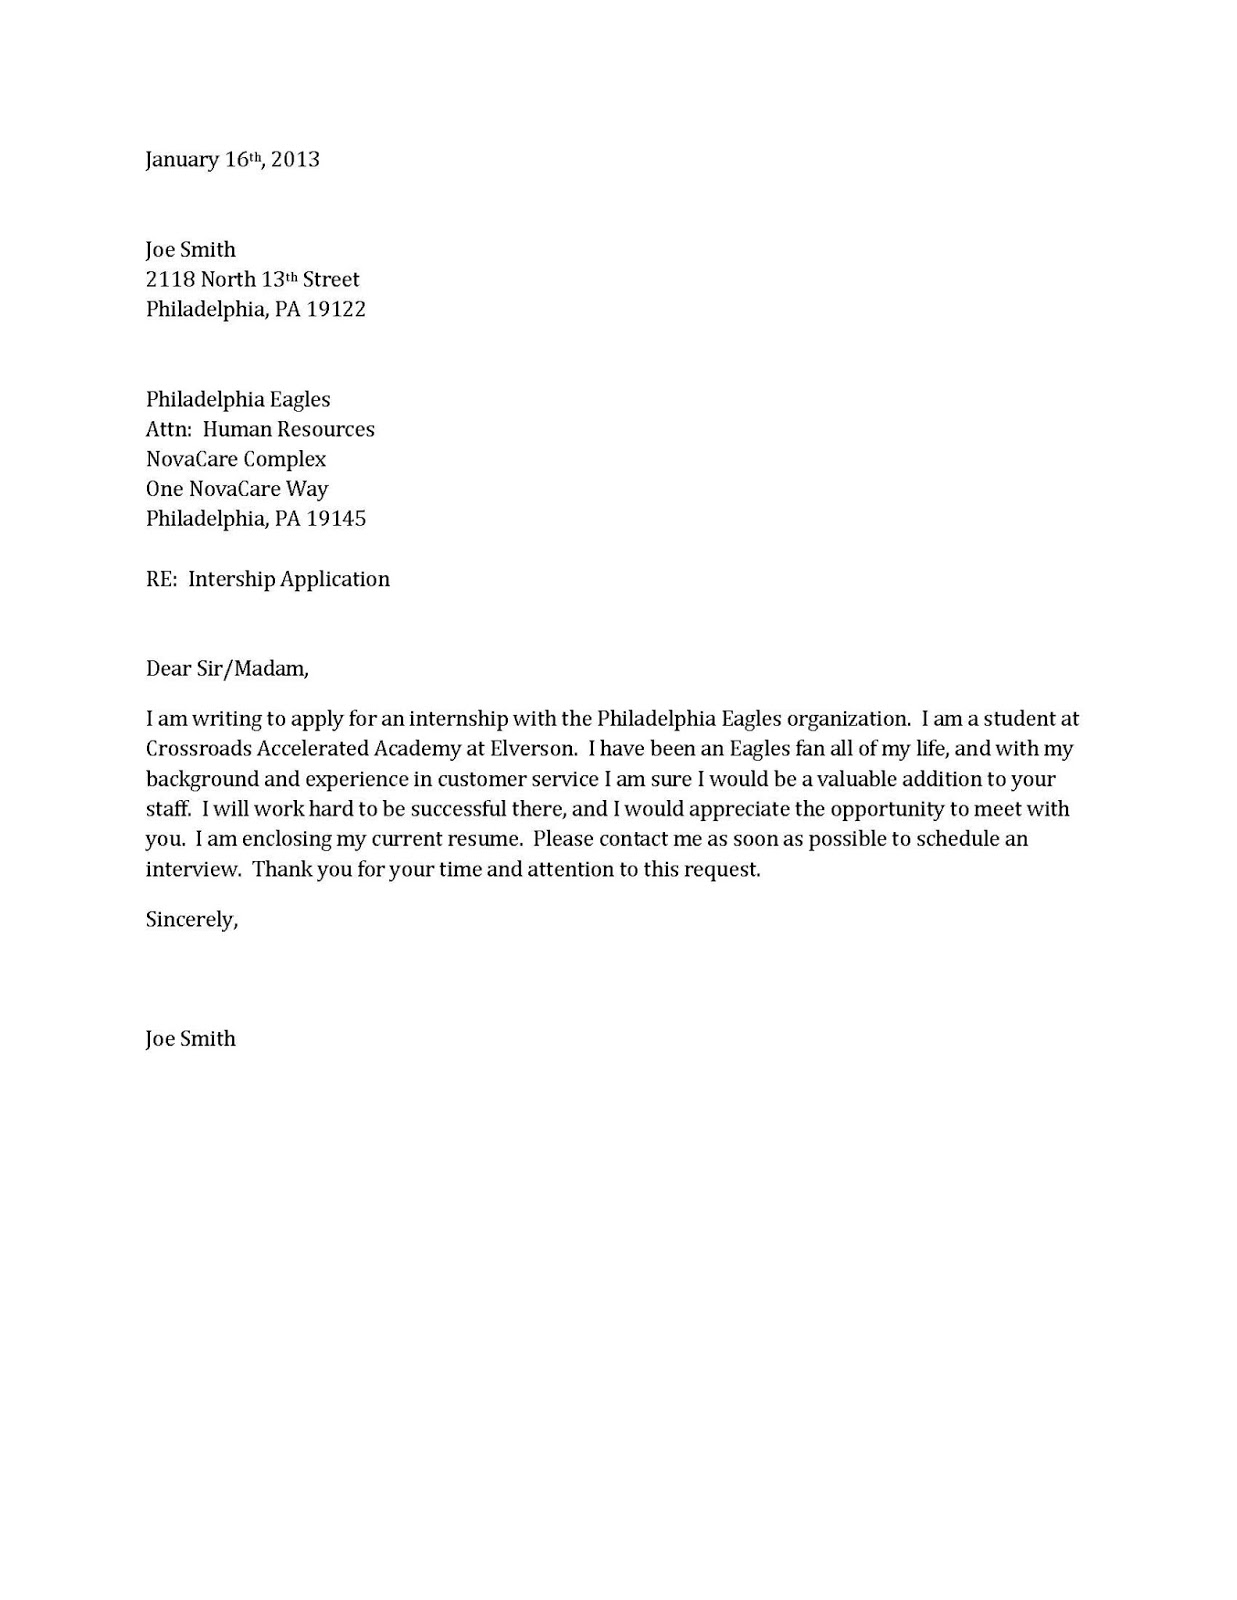 cover letter teaching job sample cover letter for teaching